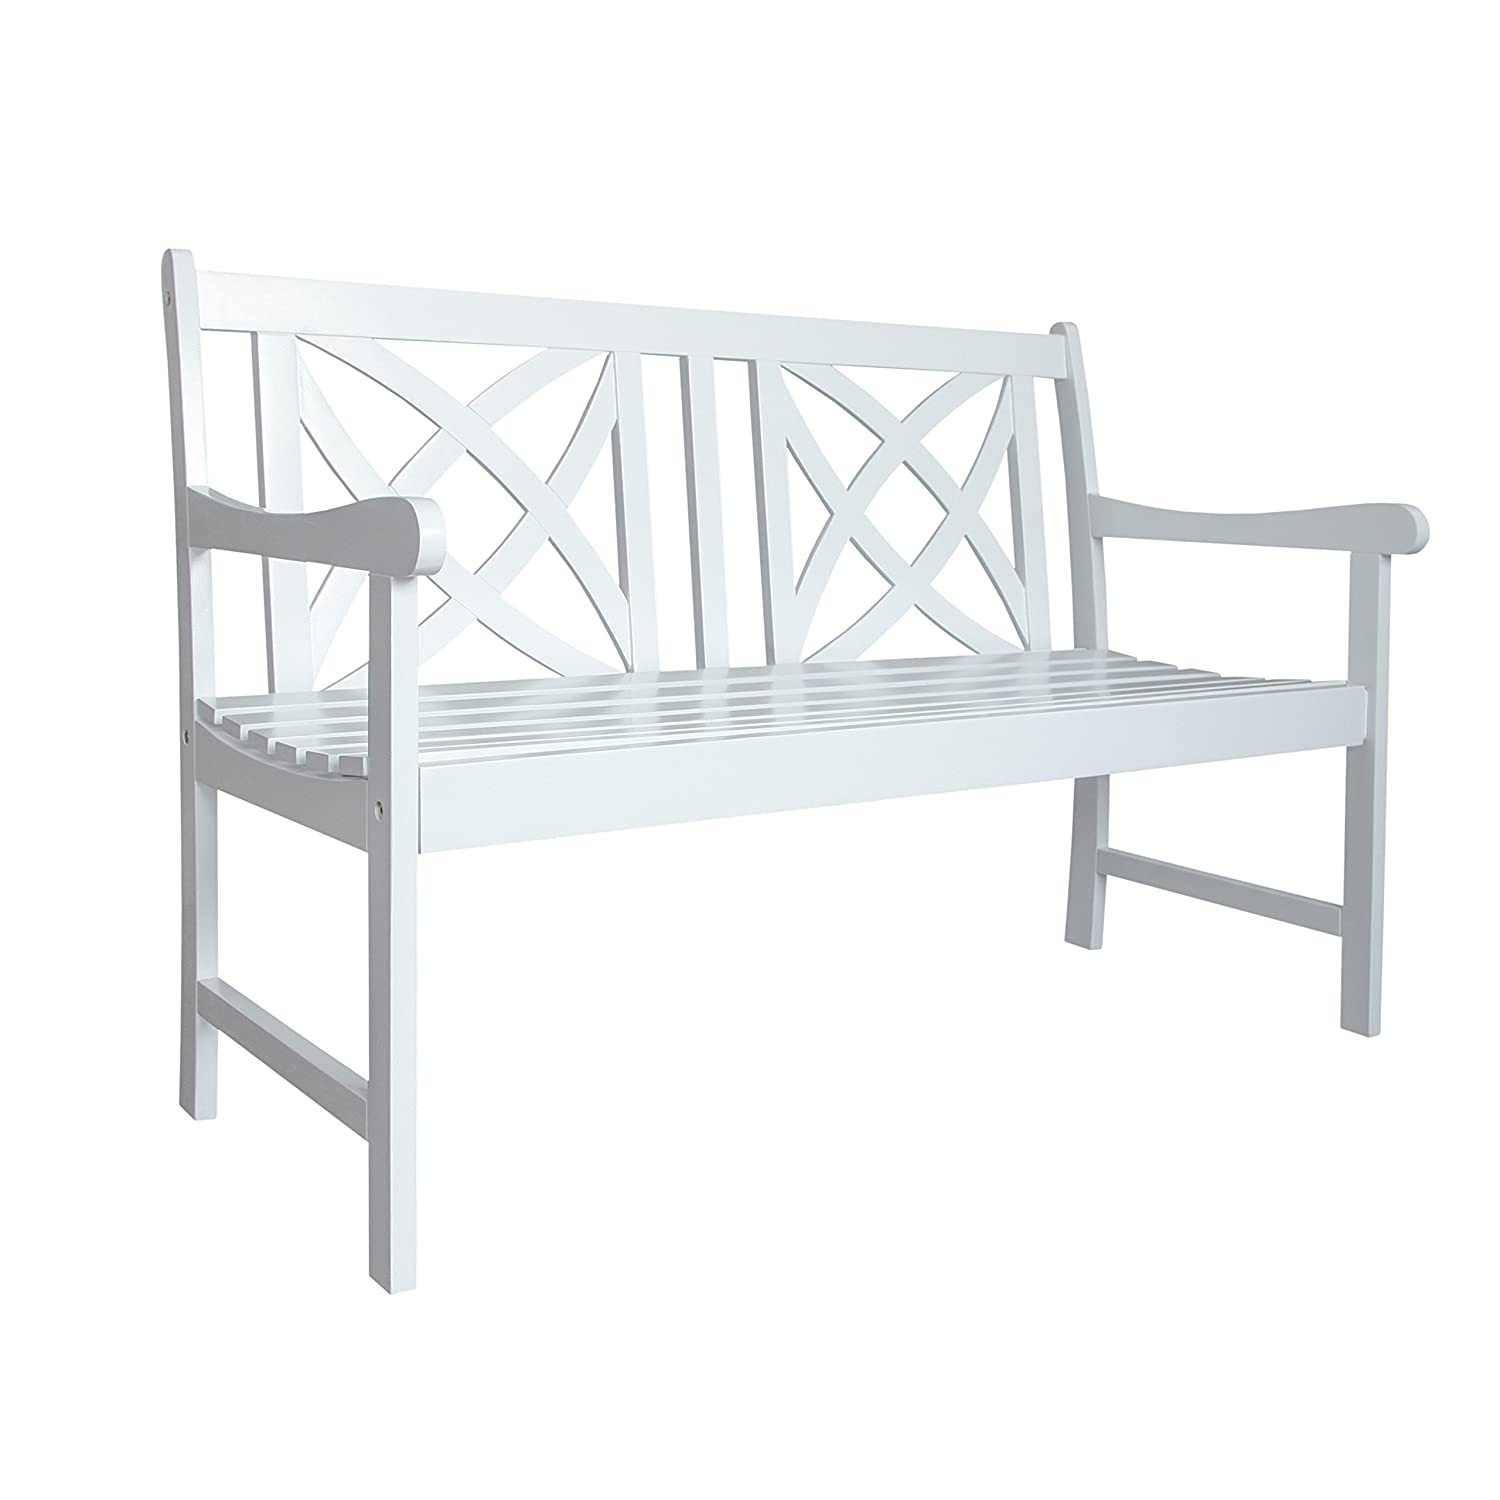 Vifah Bradley Outdoor Wood 4' Garden Bench, White V1713